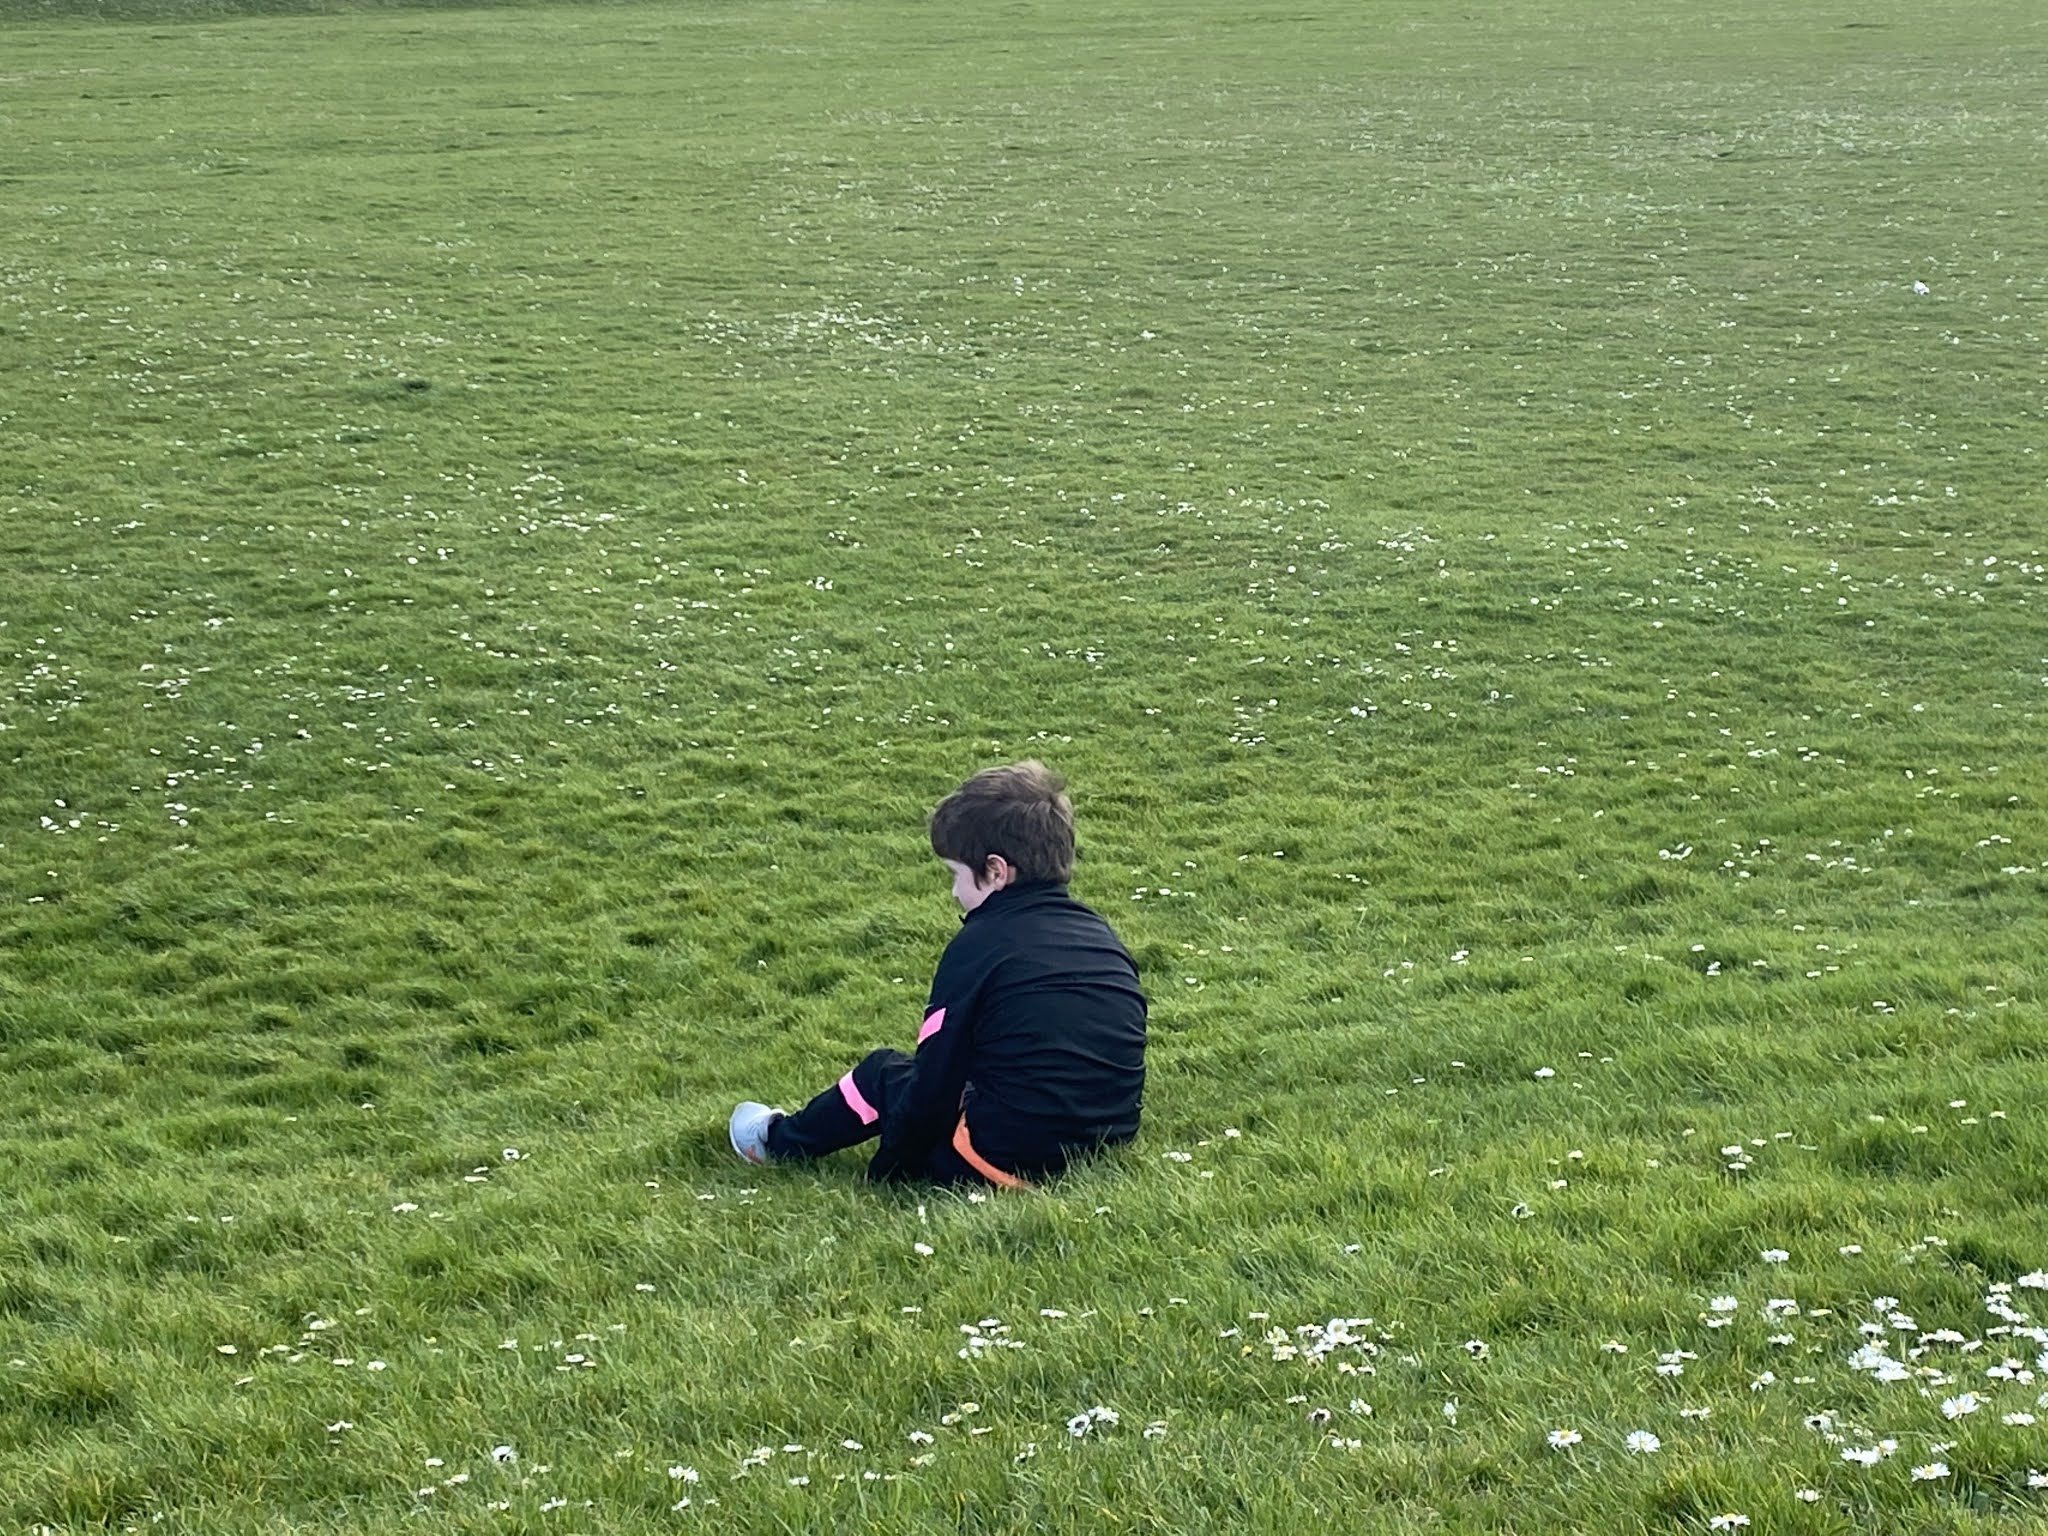 Boy sat on the grass